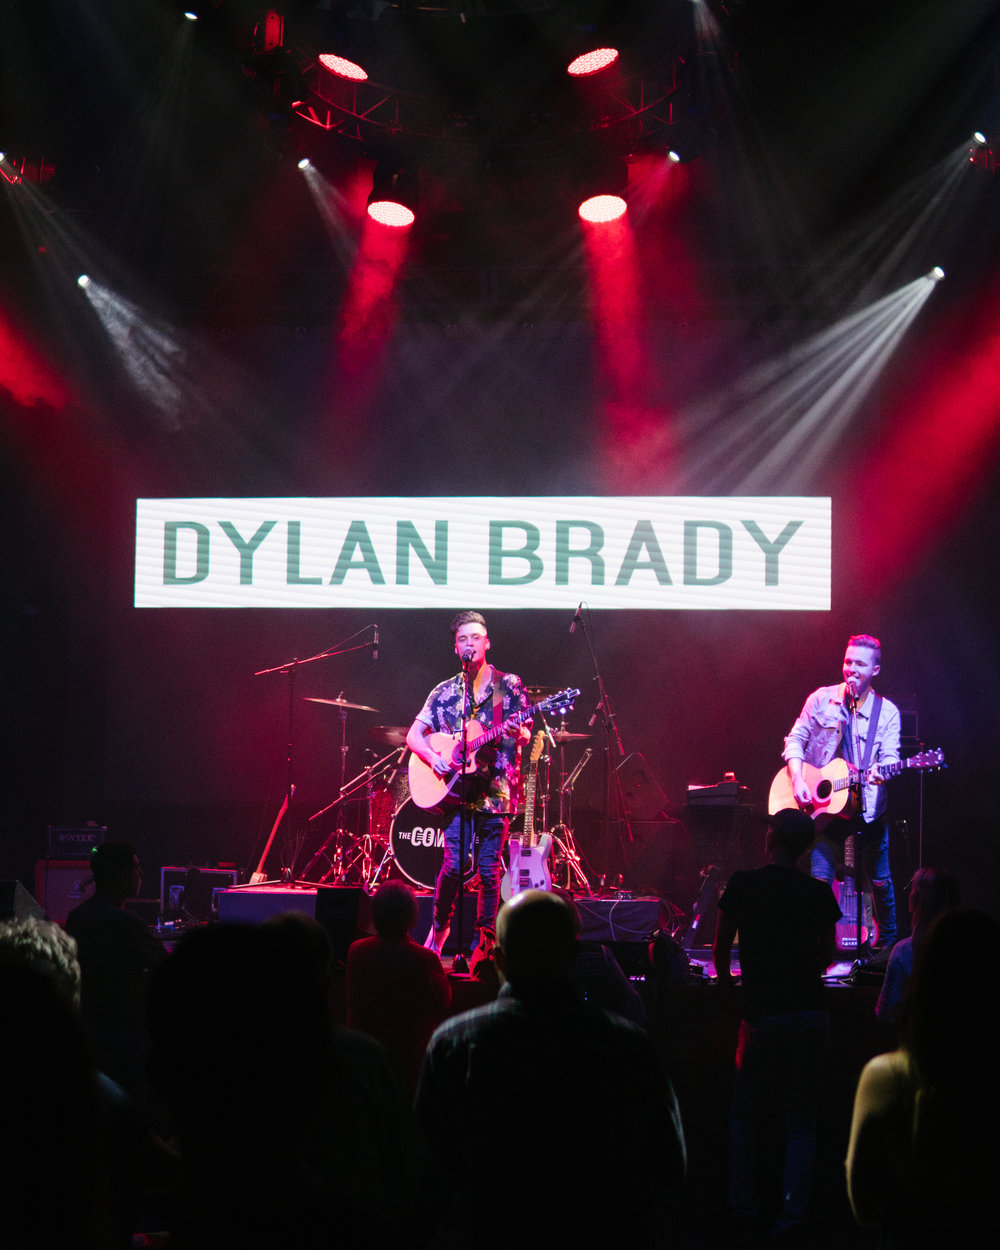 Dylan Brady Live at The Cowan